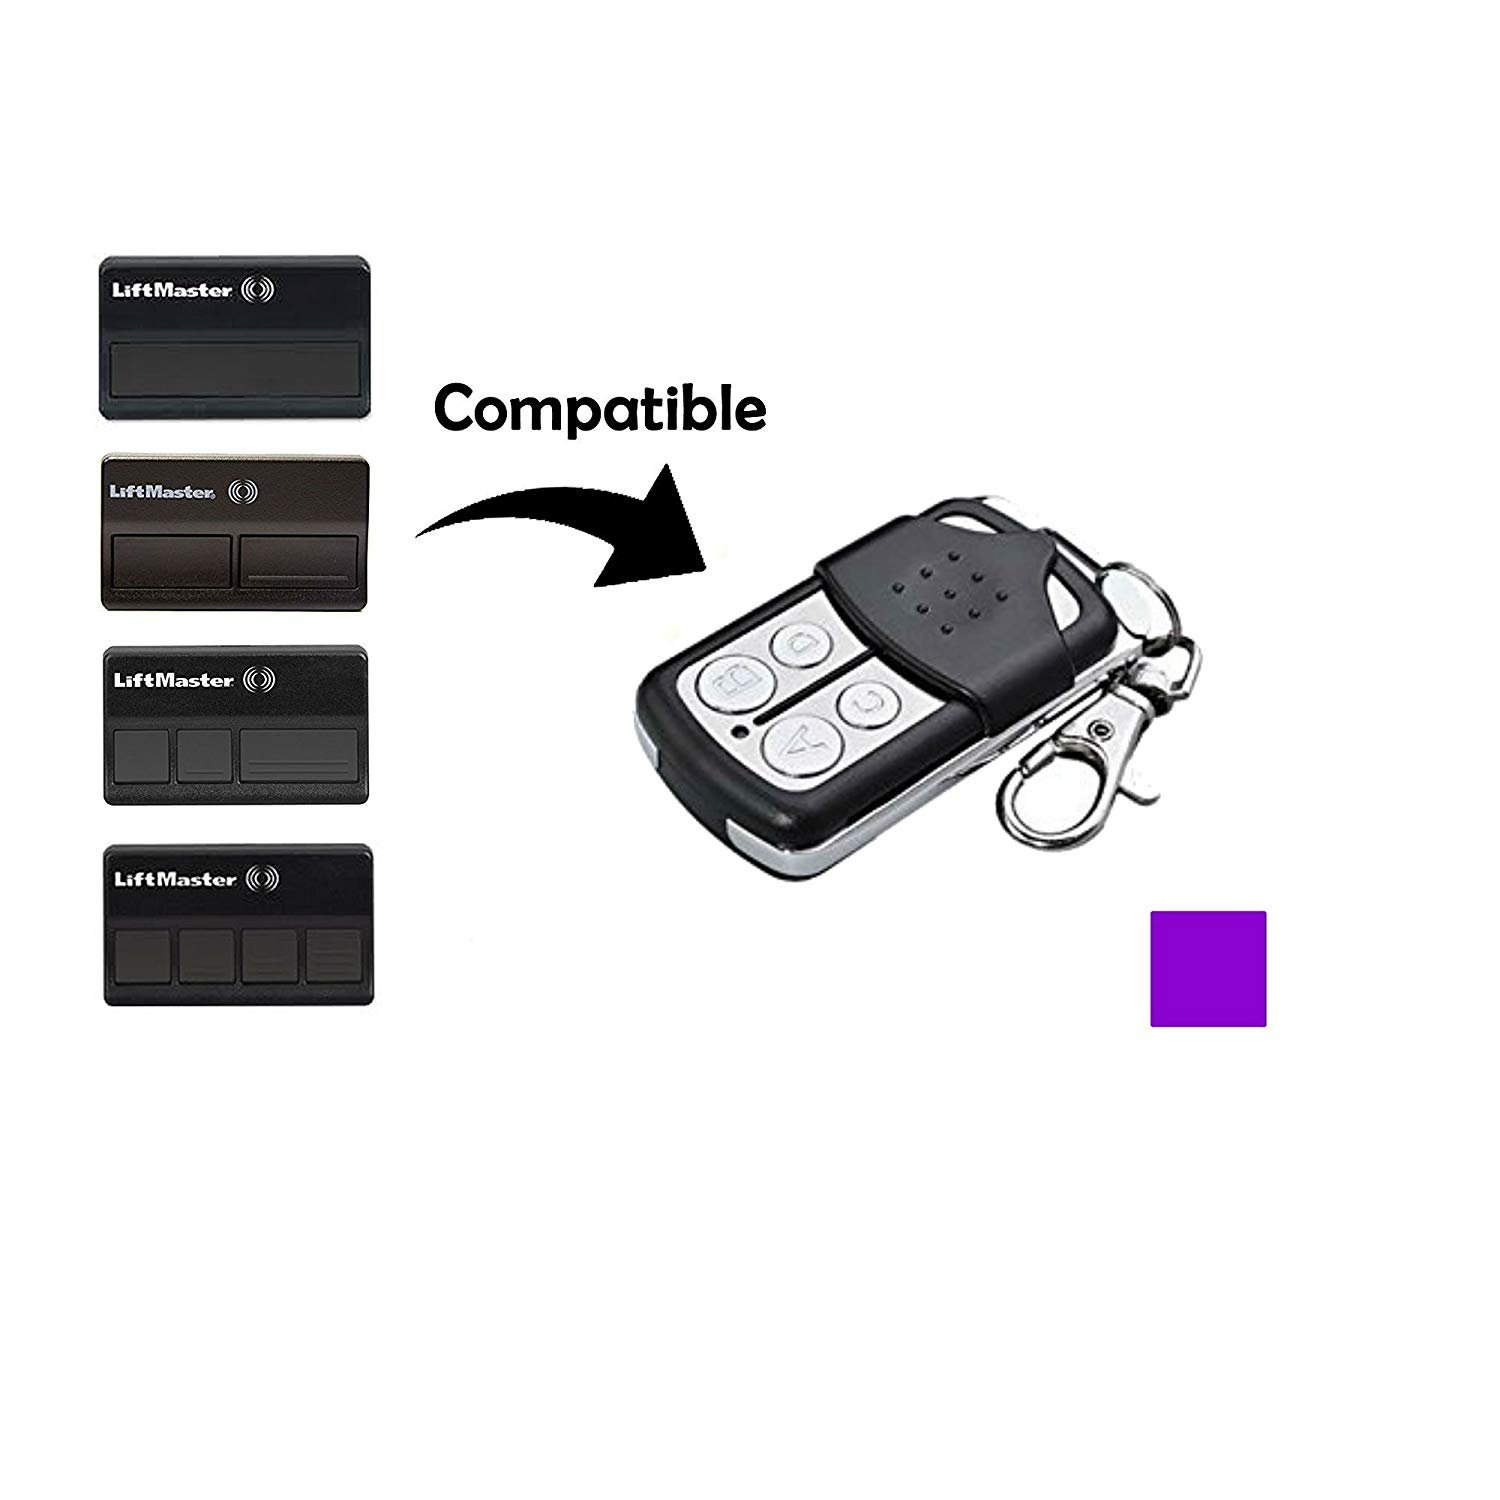 Noa Store Compatible Garage Door Remote Control with Liftmaster Chamberlain Craftsman 370LM 371LM 372LM 373LM